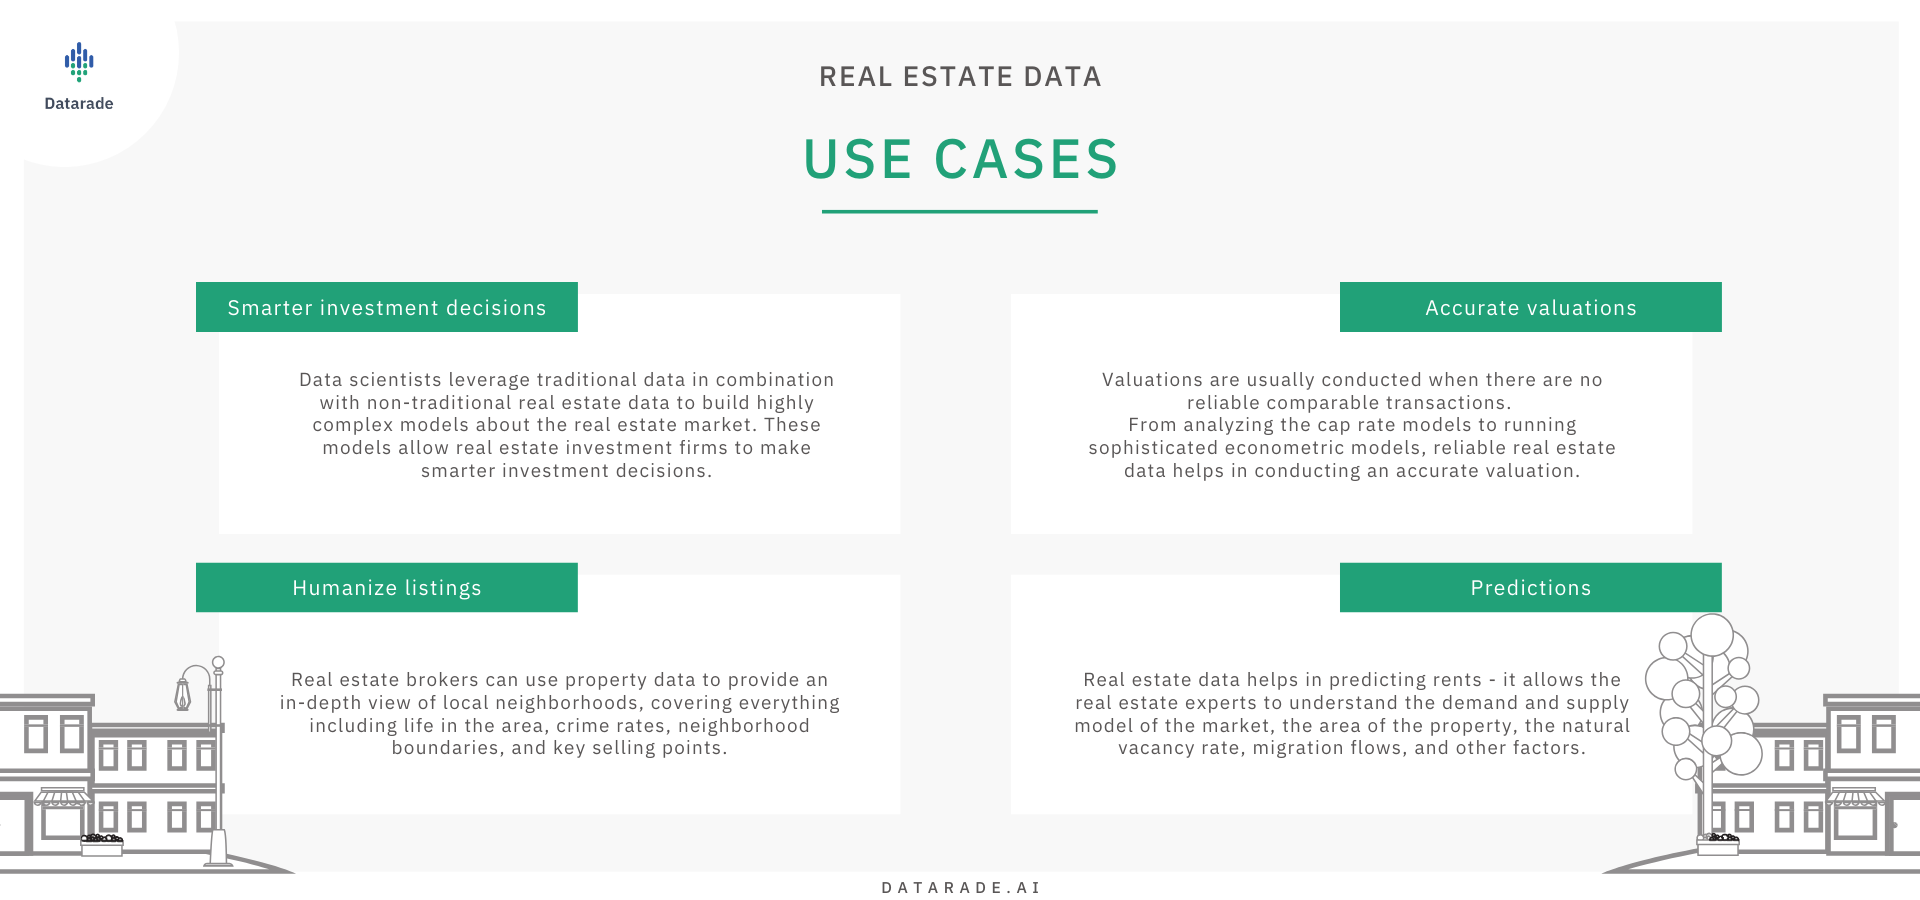 How to use real estate market data?